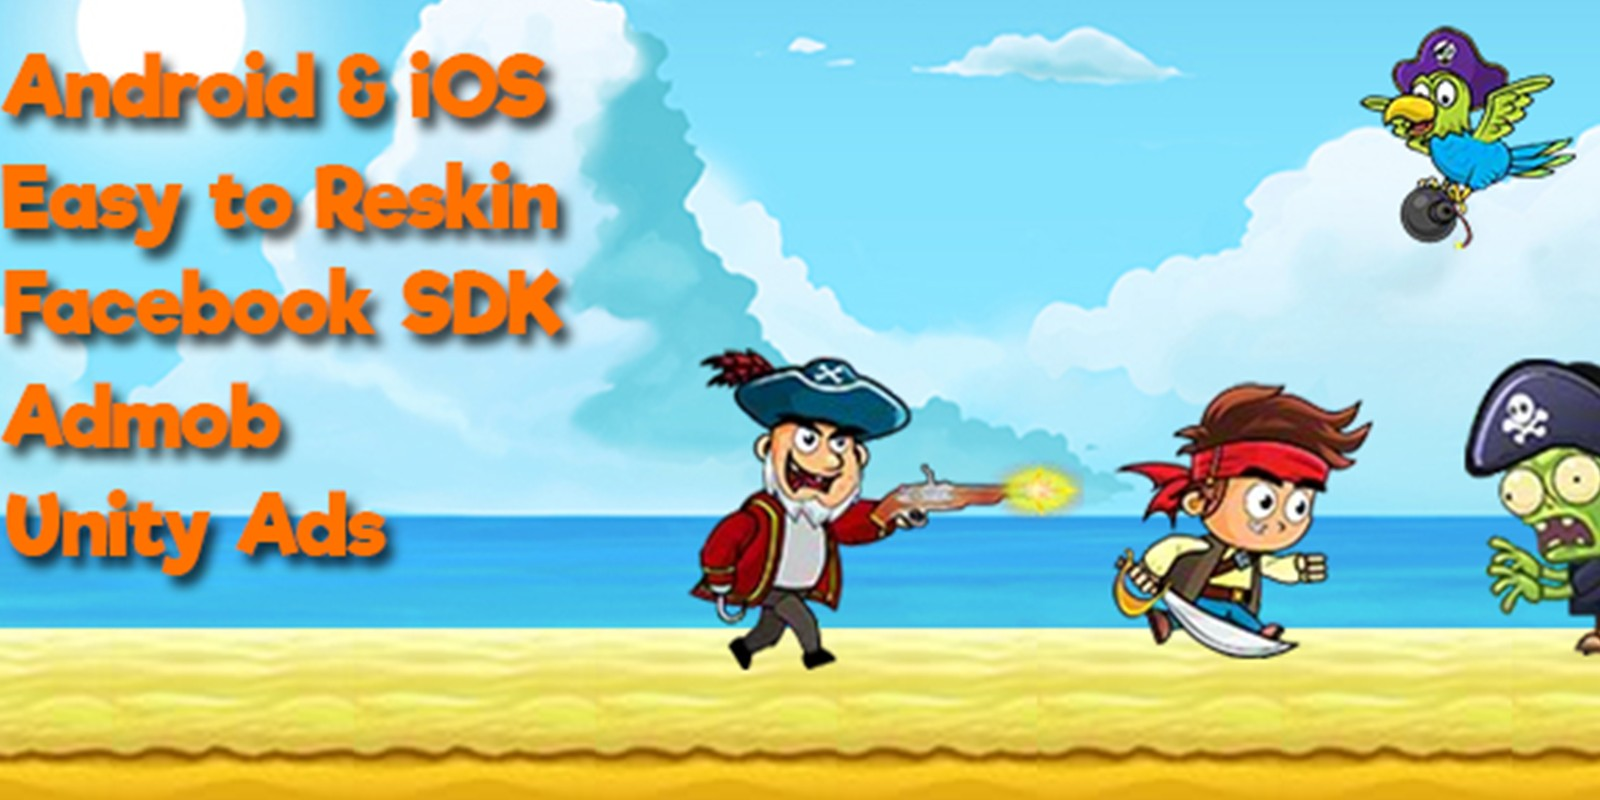 Pirate Run Away Unity Source Code